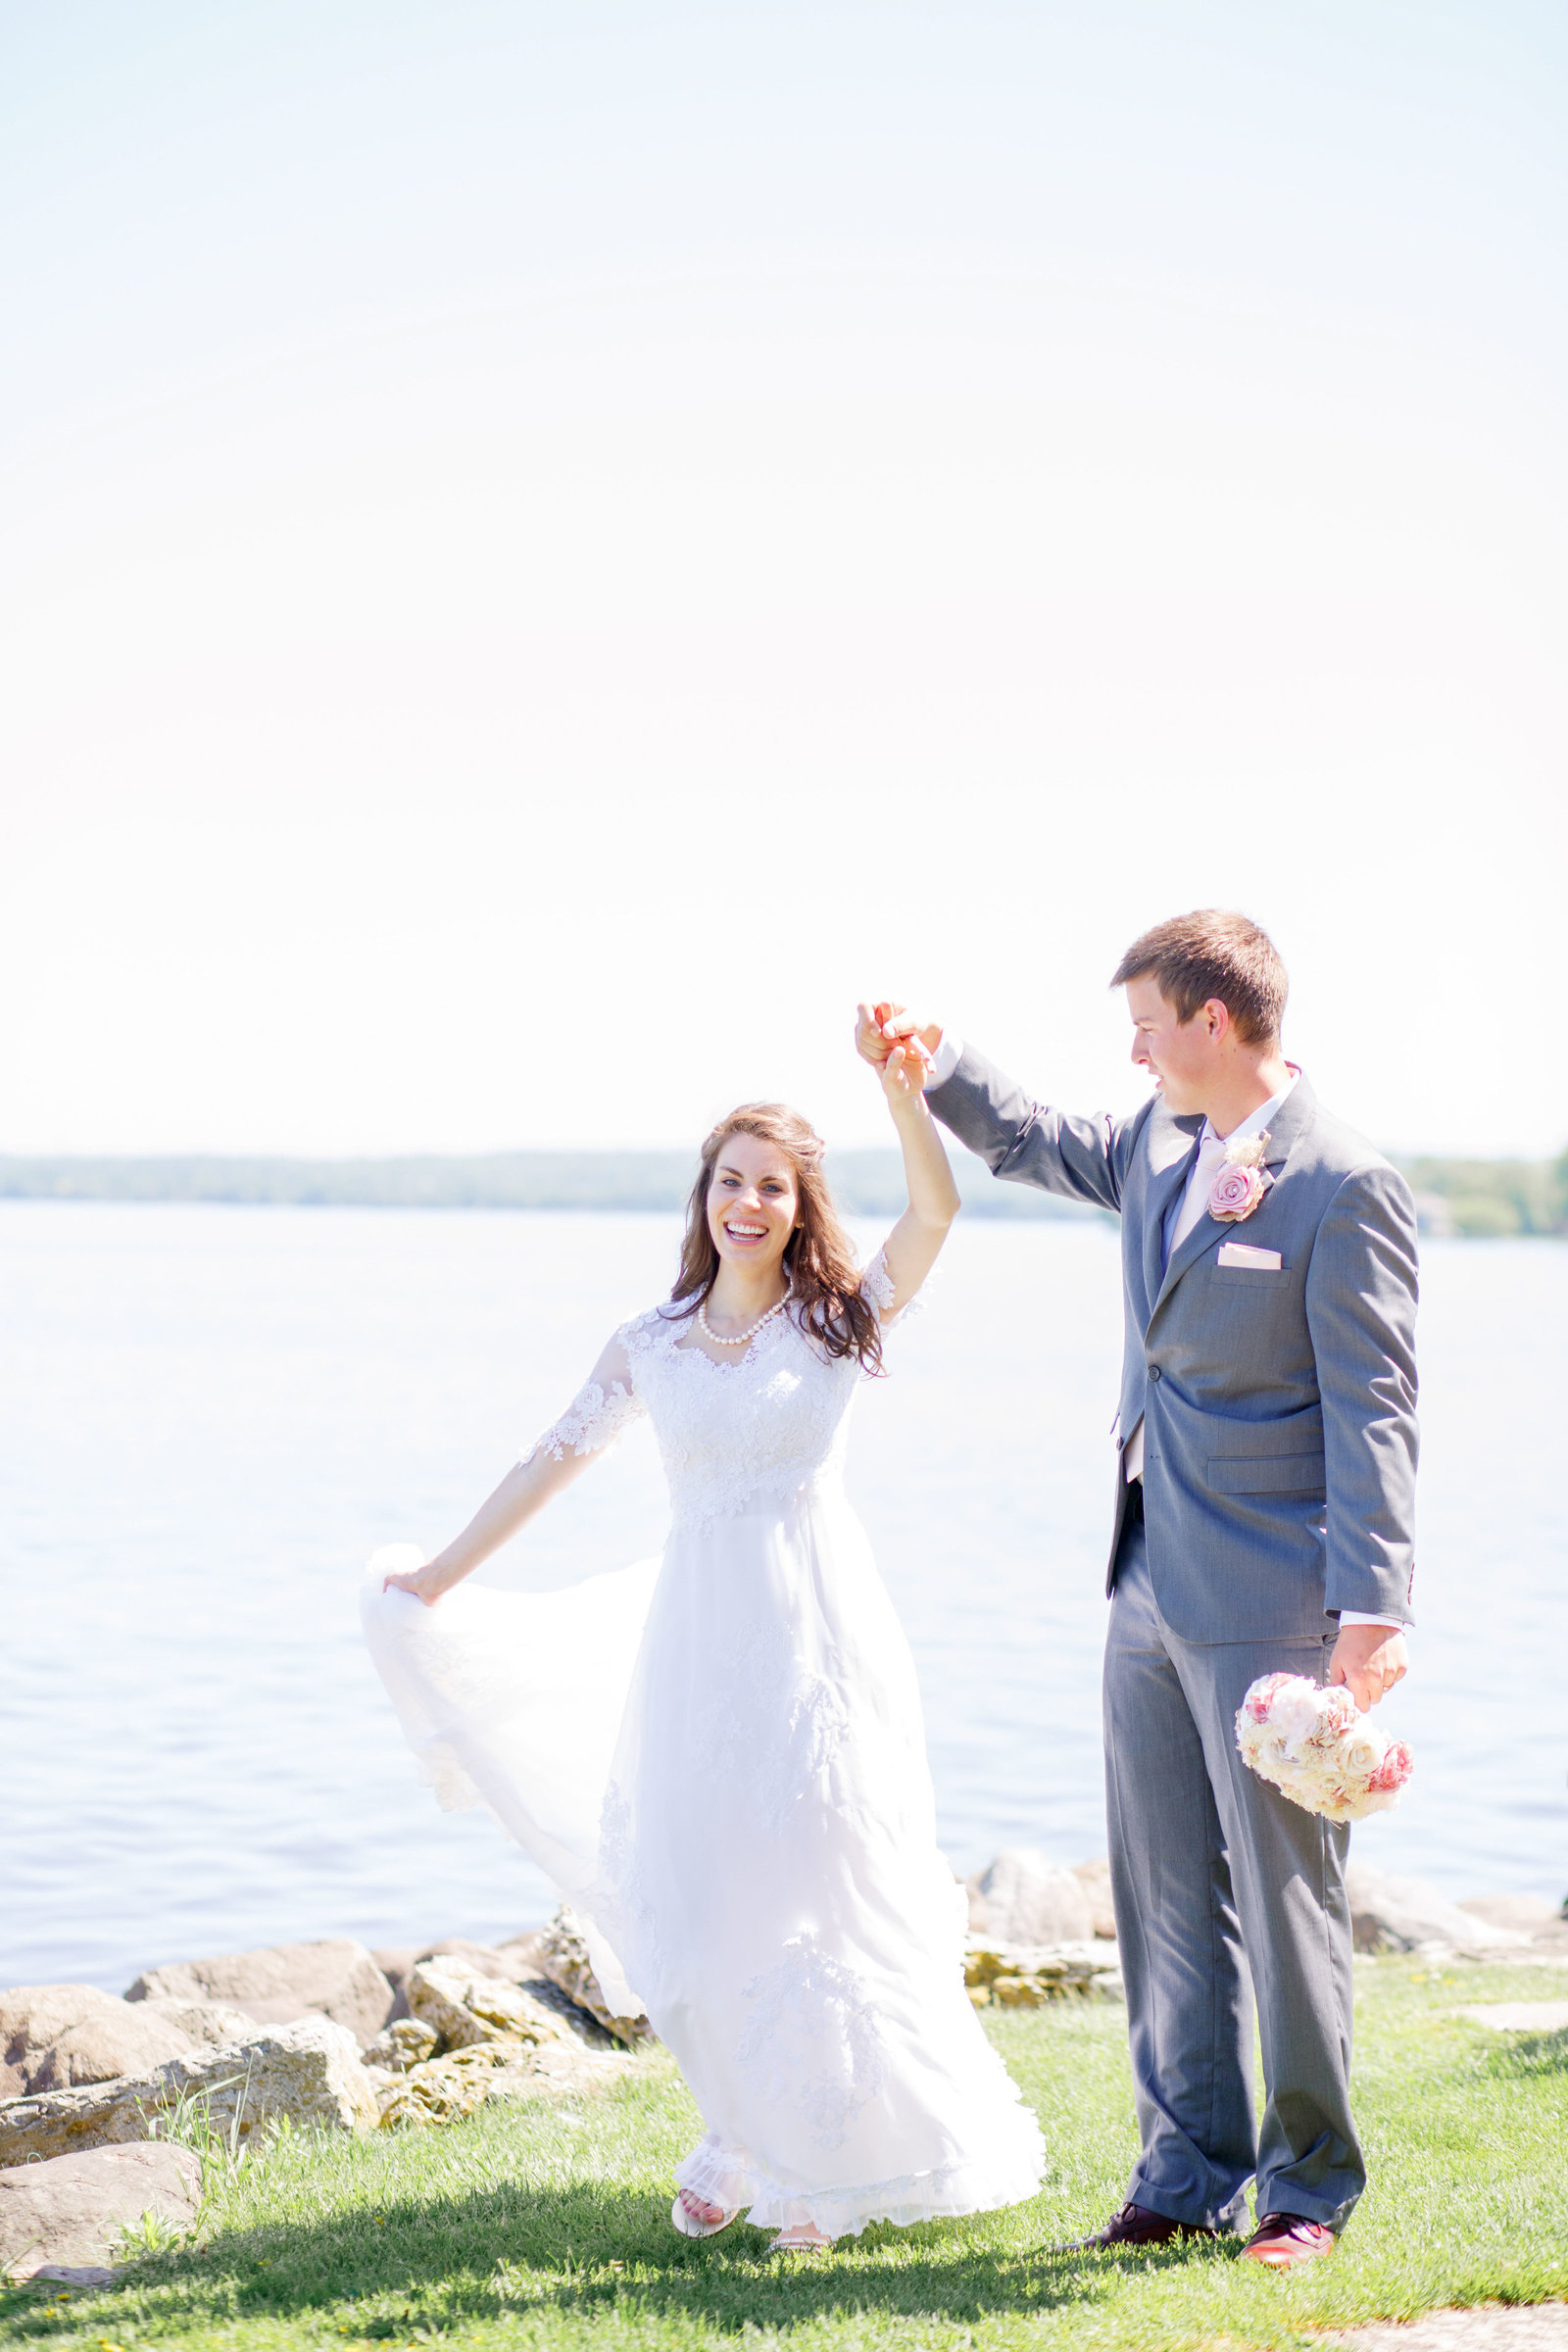 authenticweddingphotography-10